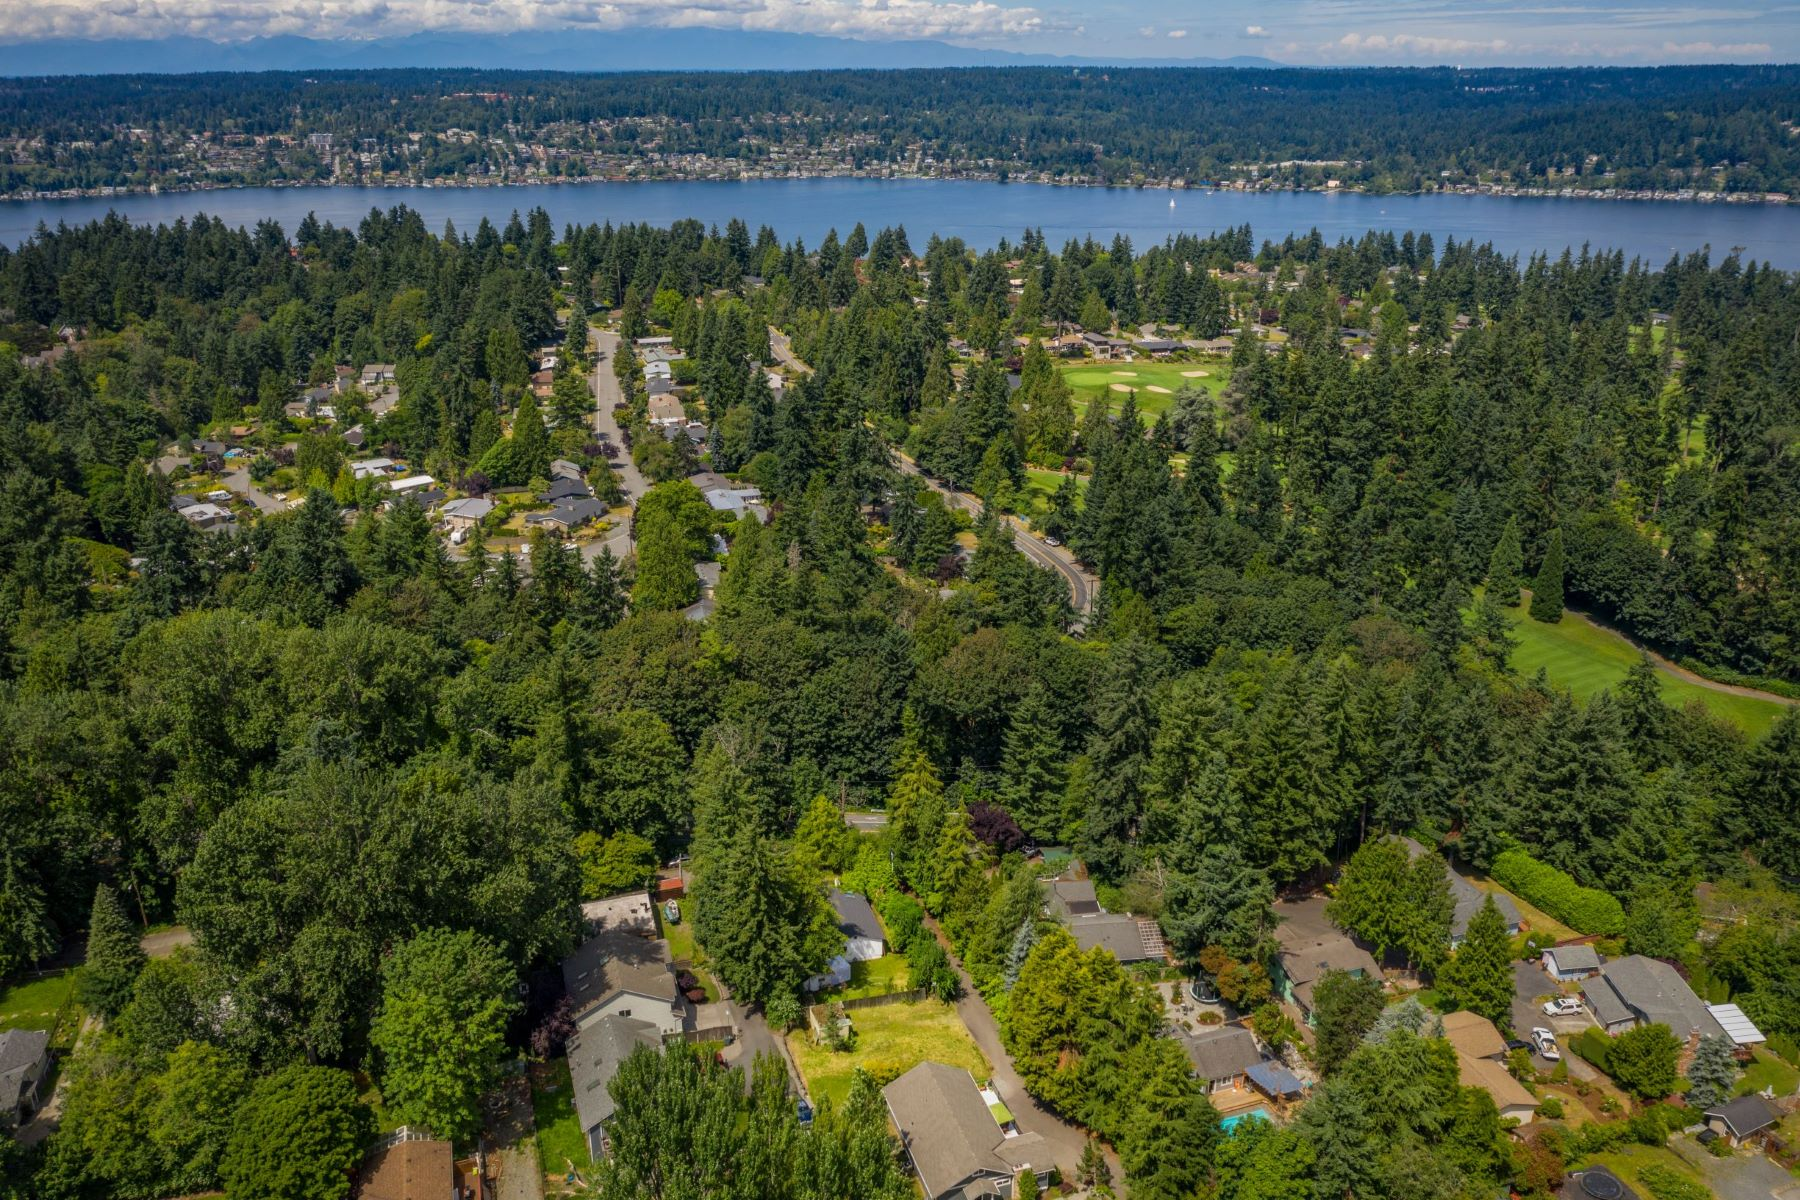 Land for Sale at Beautiful Building Opportunity in Kenmore Near the Shore of Lake Washington XXXX Juanita Dr NE Kenmore, Washington 98028 United States